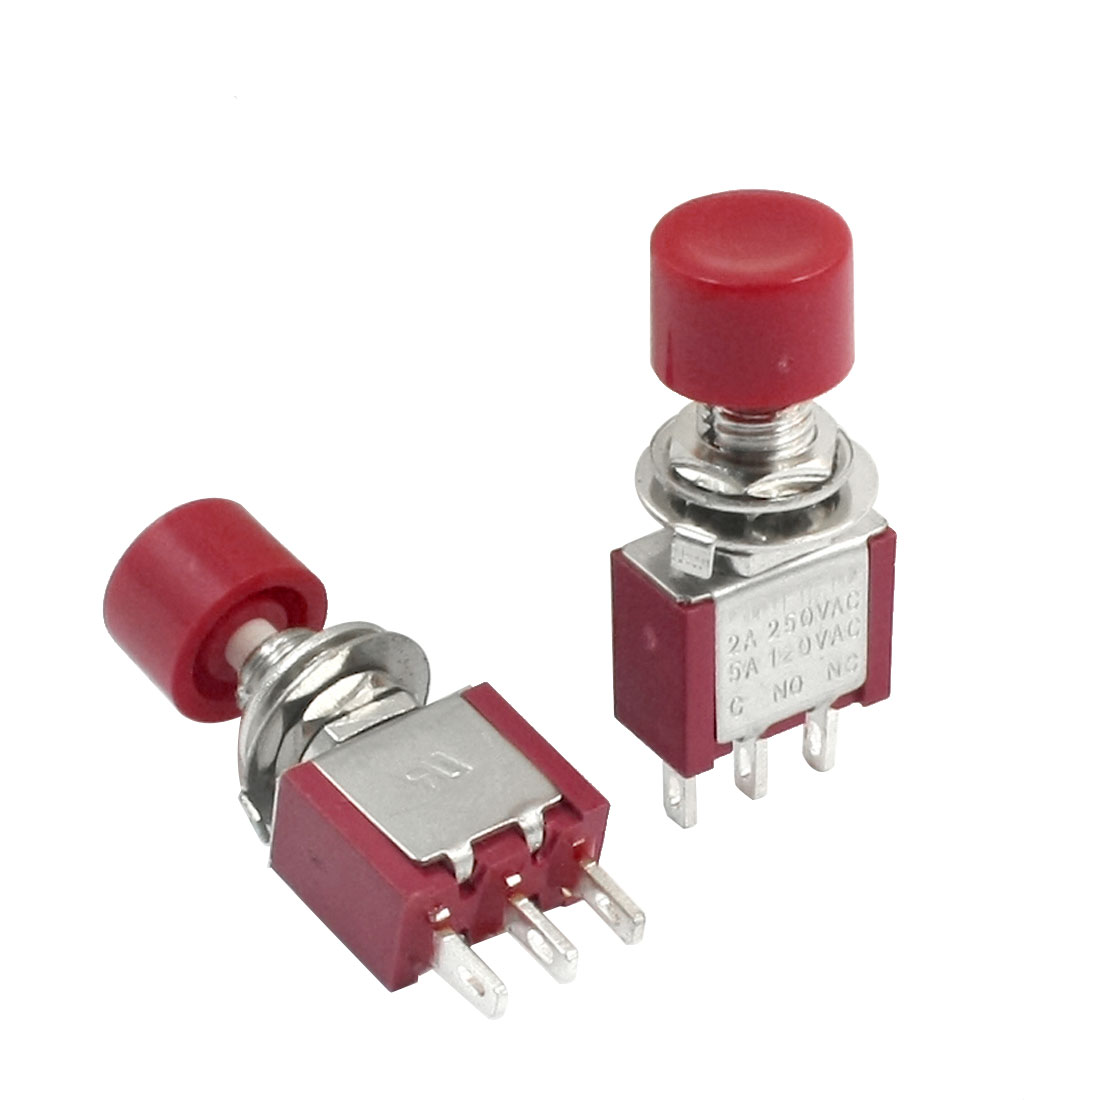 2pcs AC250V 2A 120V 5A 3Terminals 1P2T Red Cap Push Button Toggle Switch